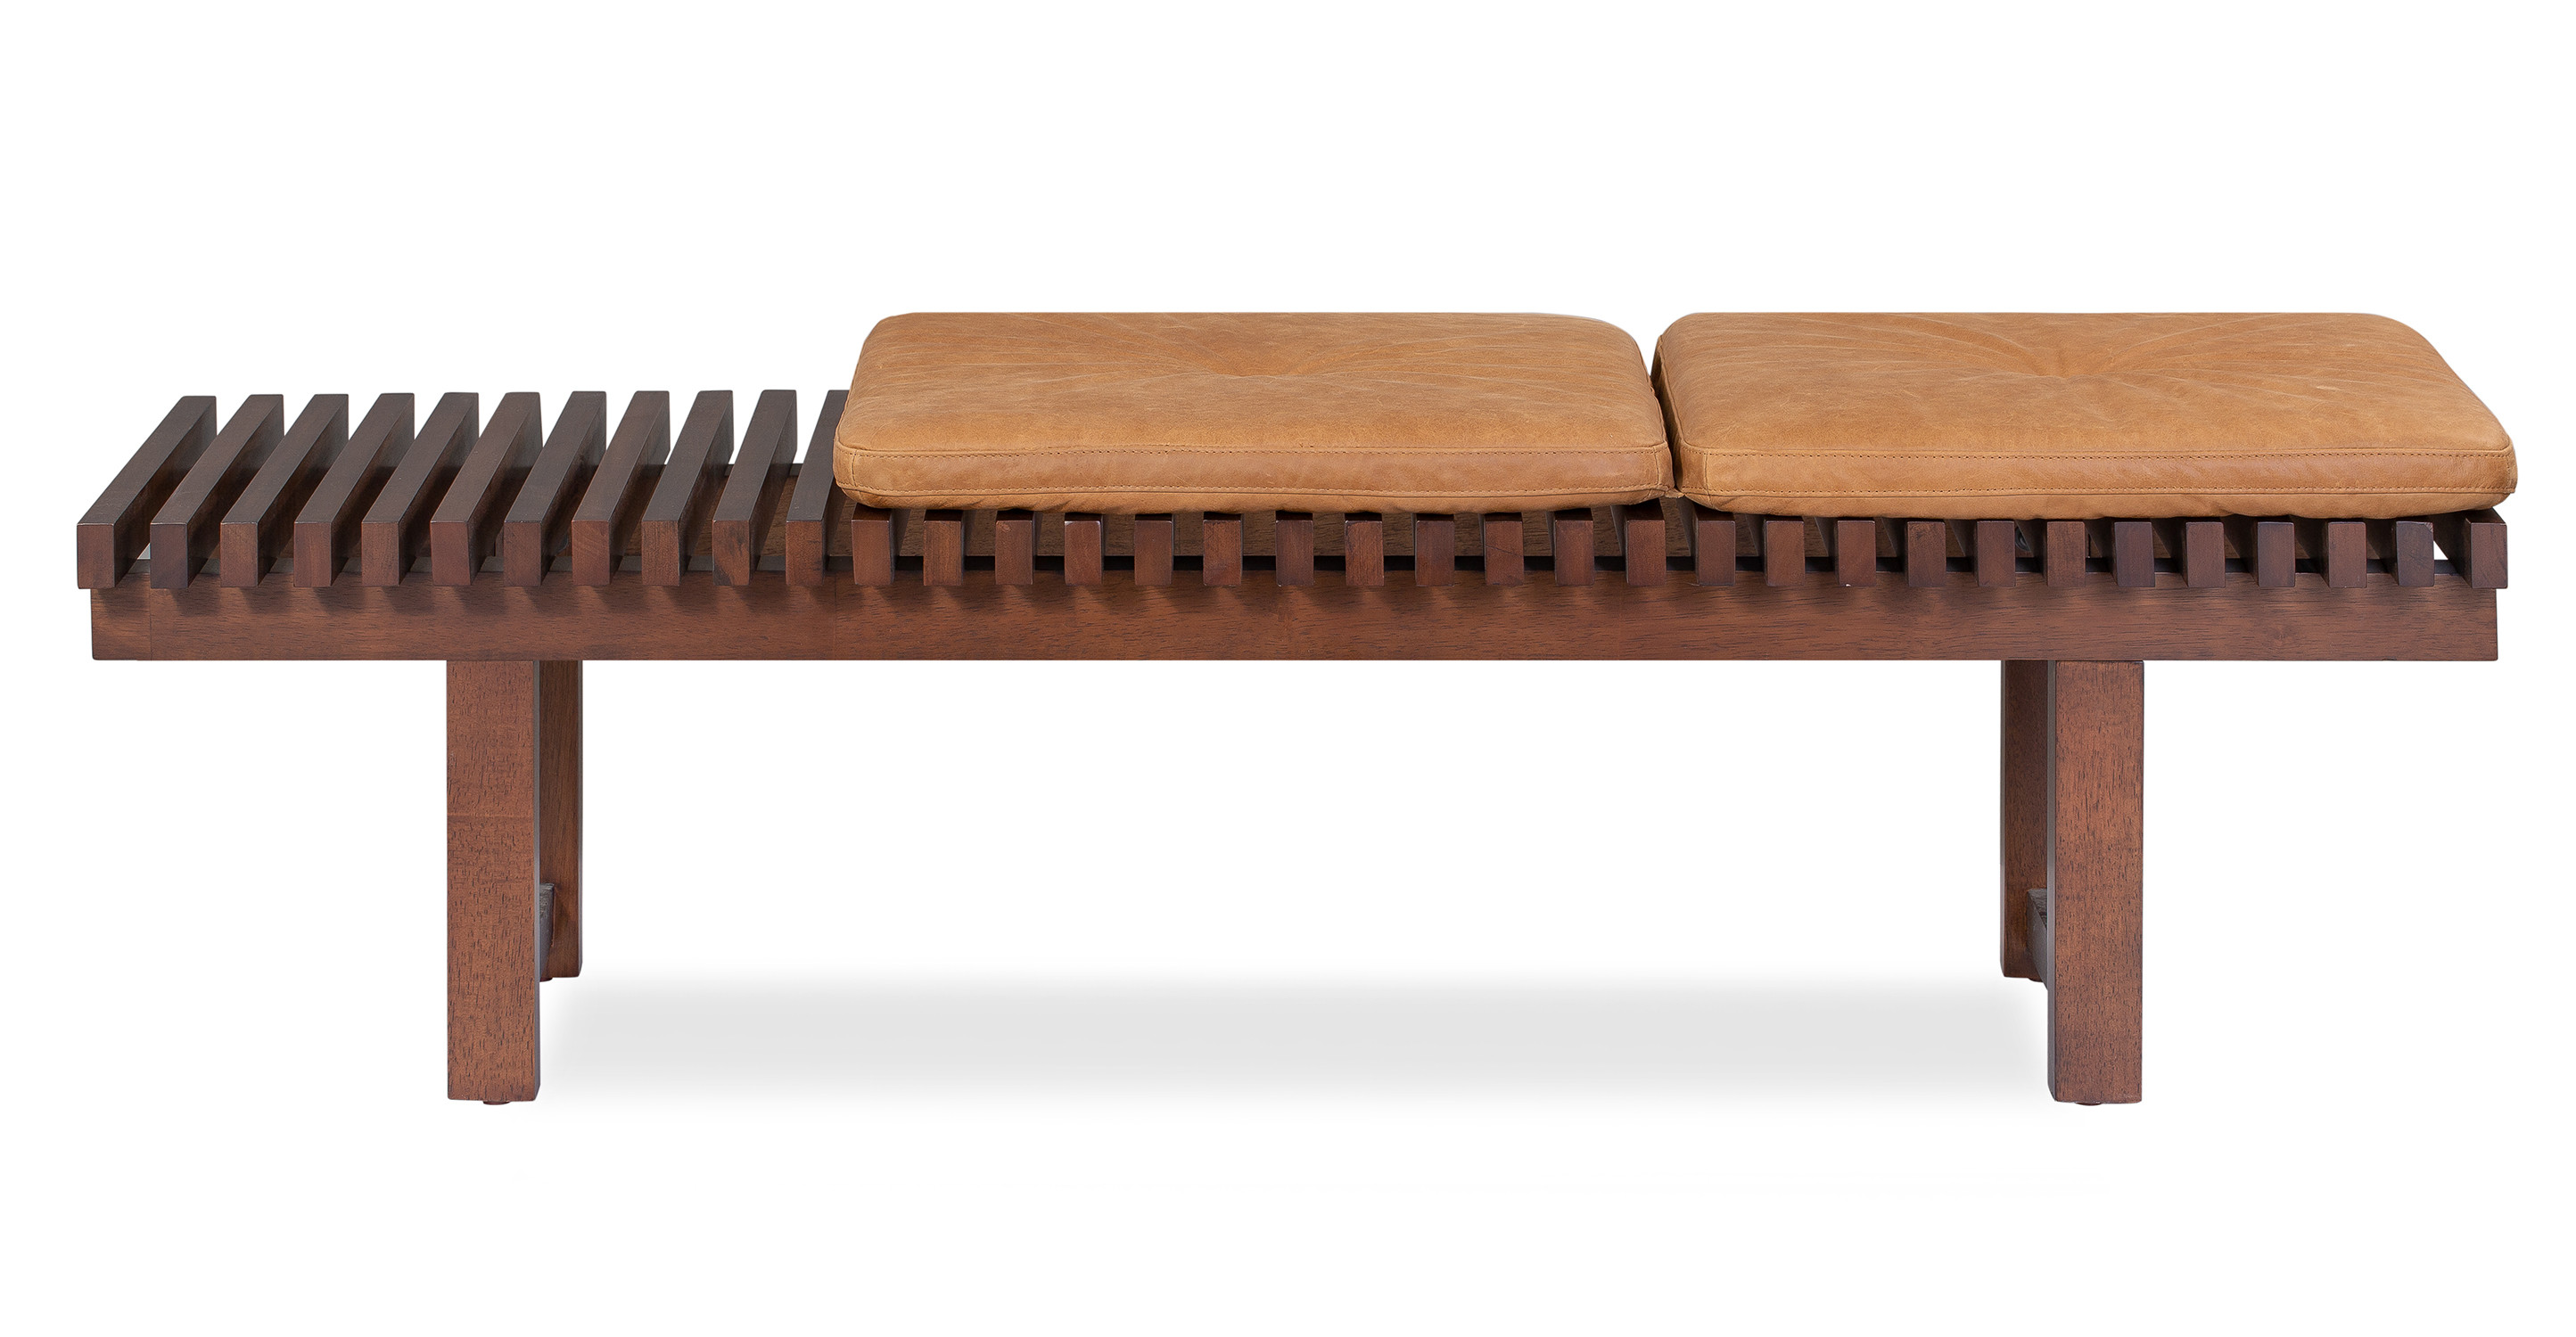 "Slat 42"" Leather Bench, Russet Top Grain Full Aniline Leather"